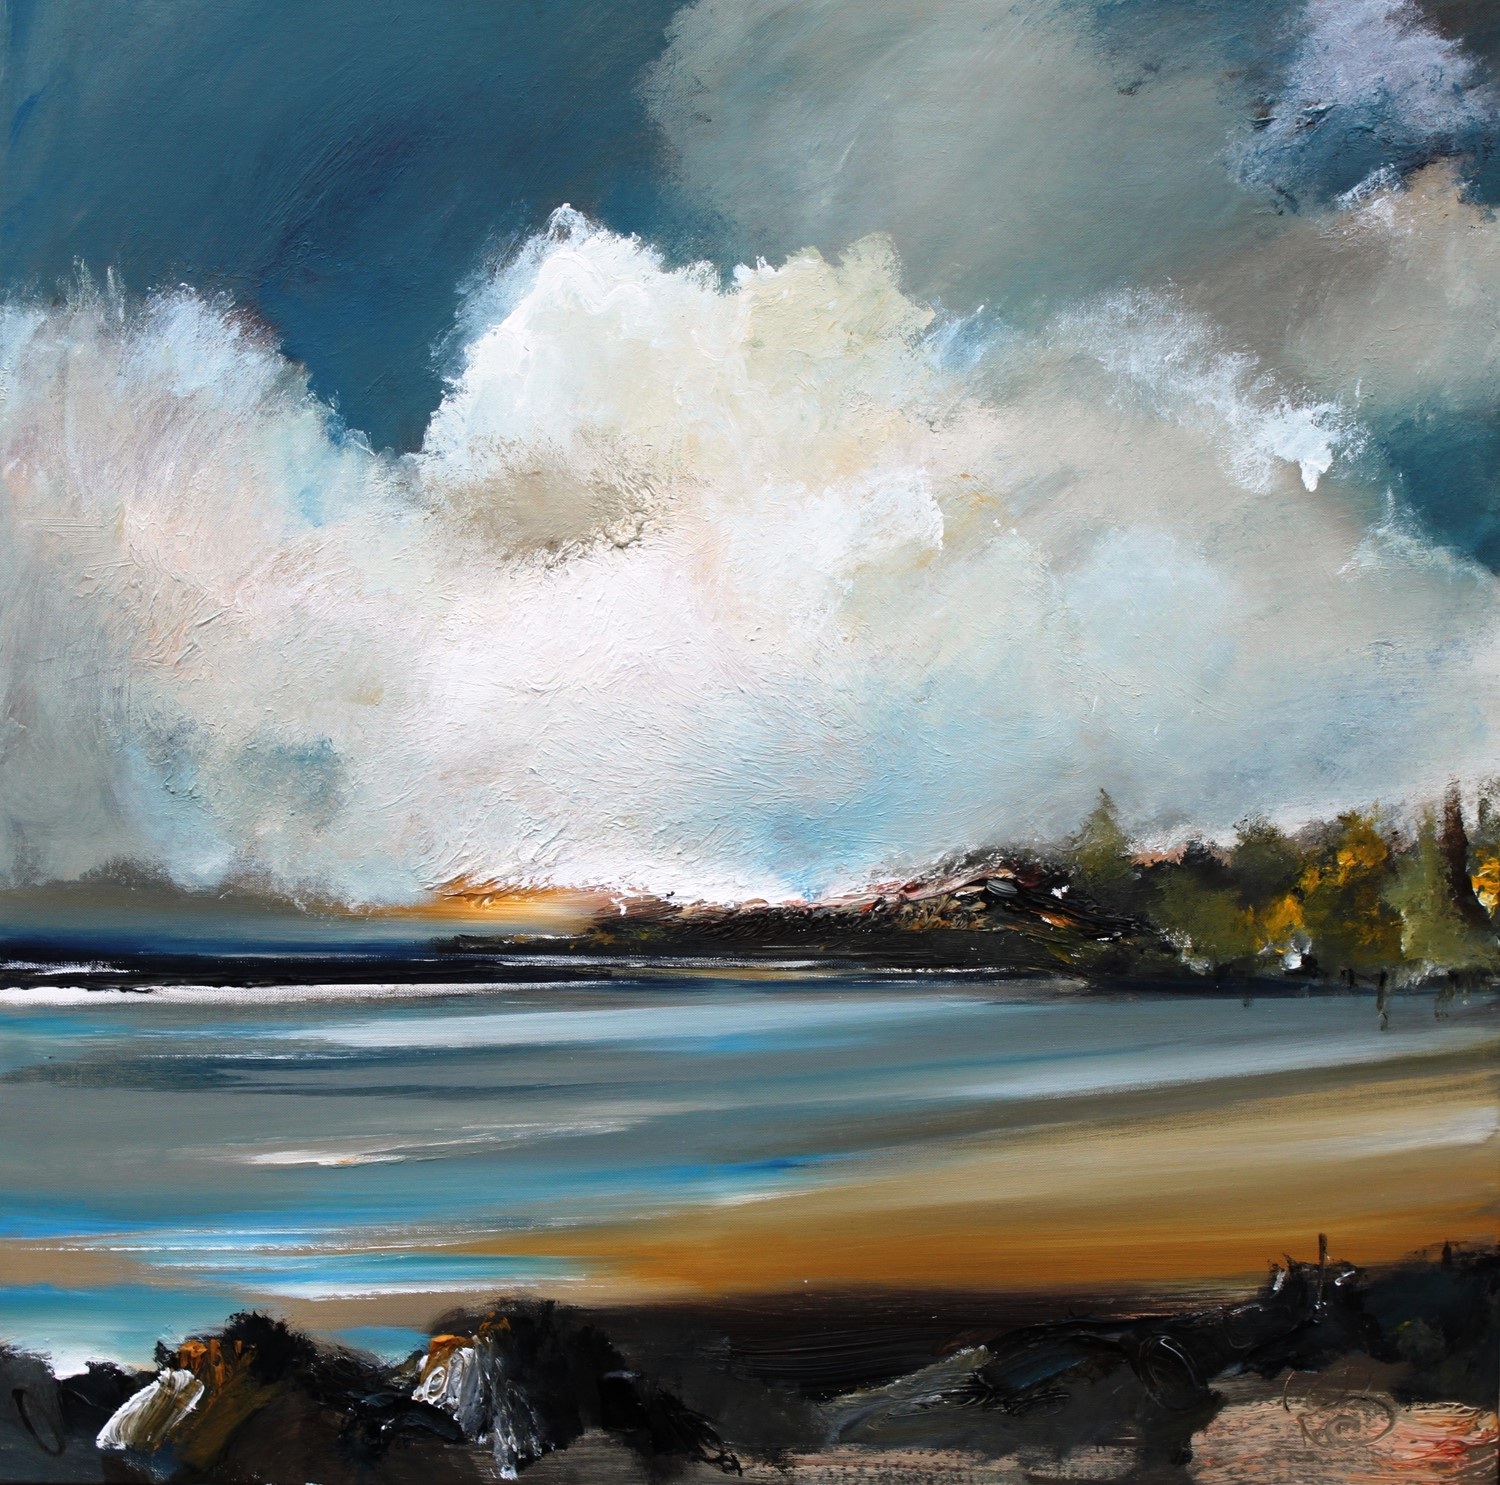 'Woodland Bay' by artist Rosanne Barr